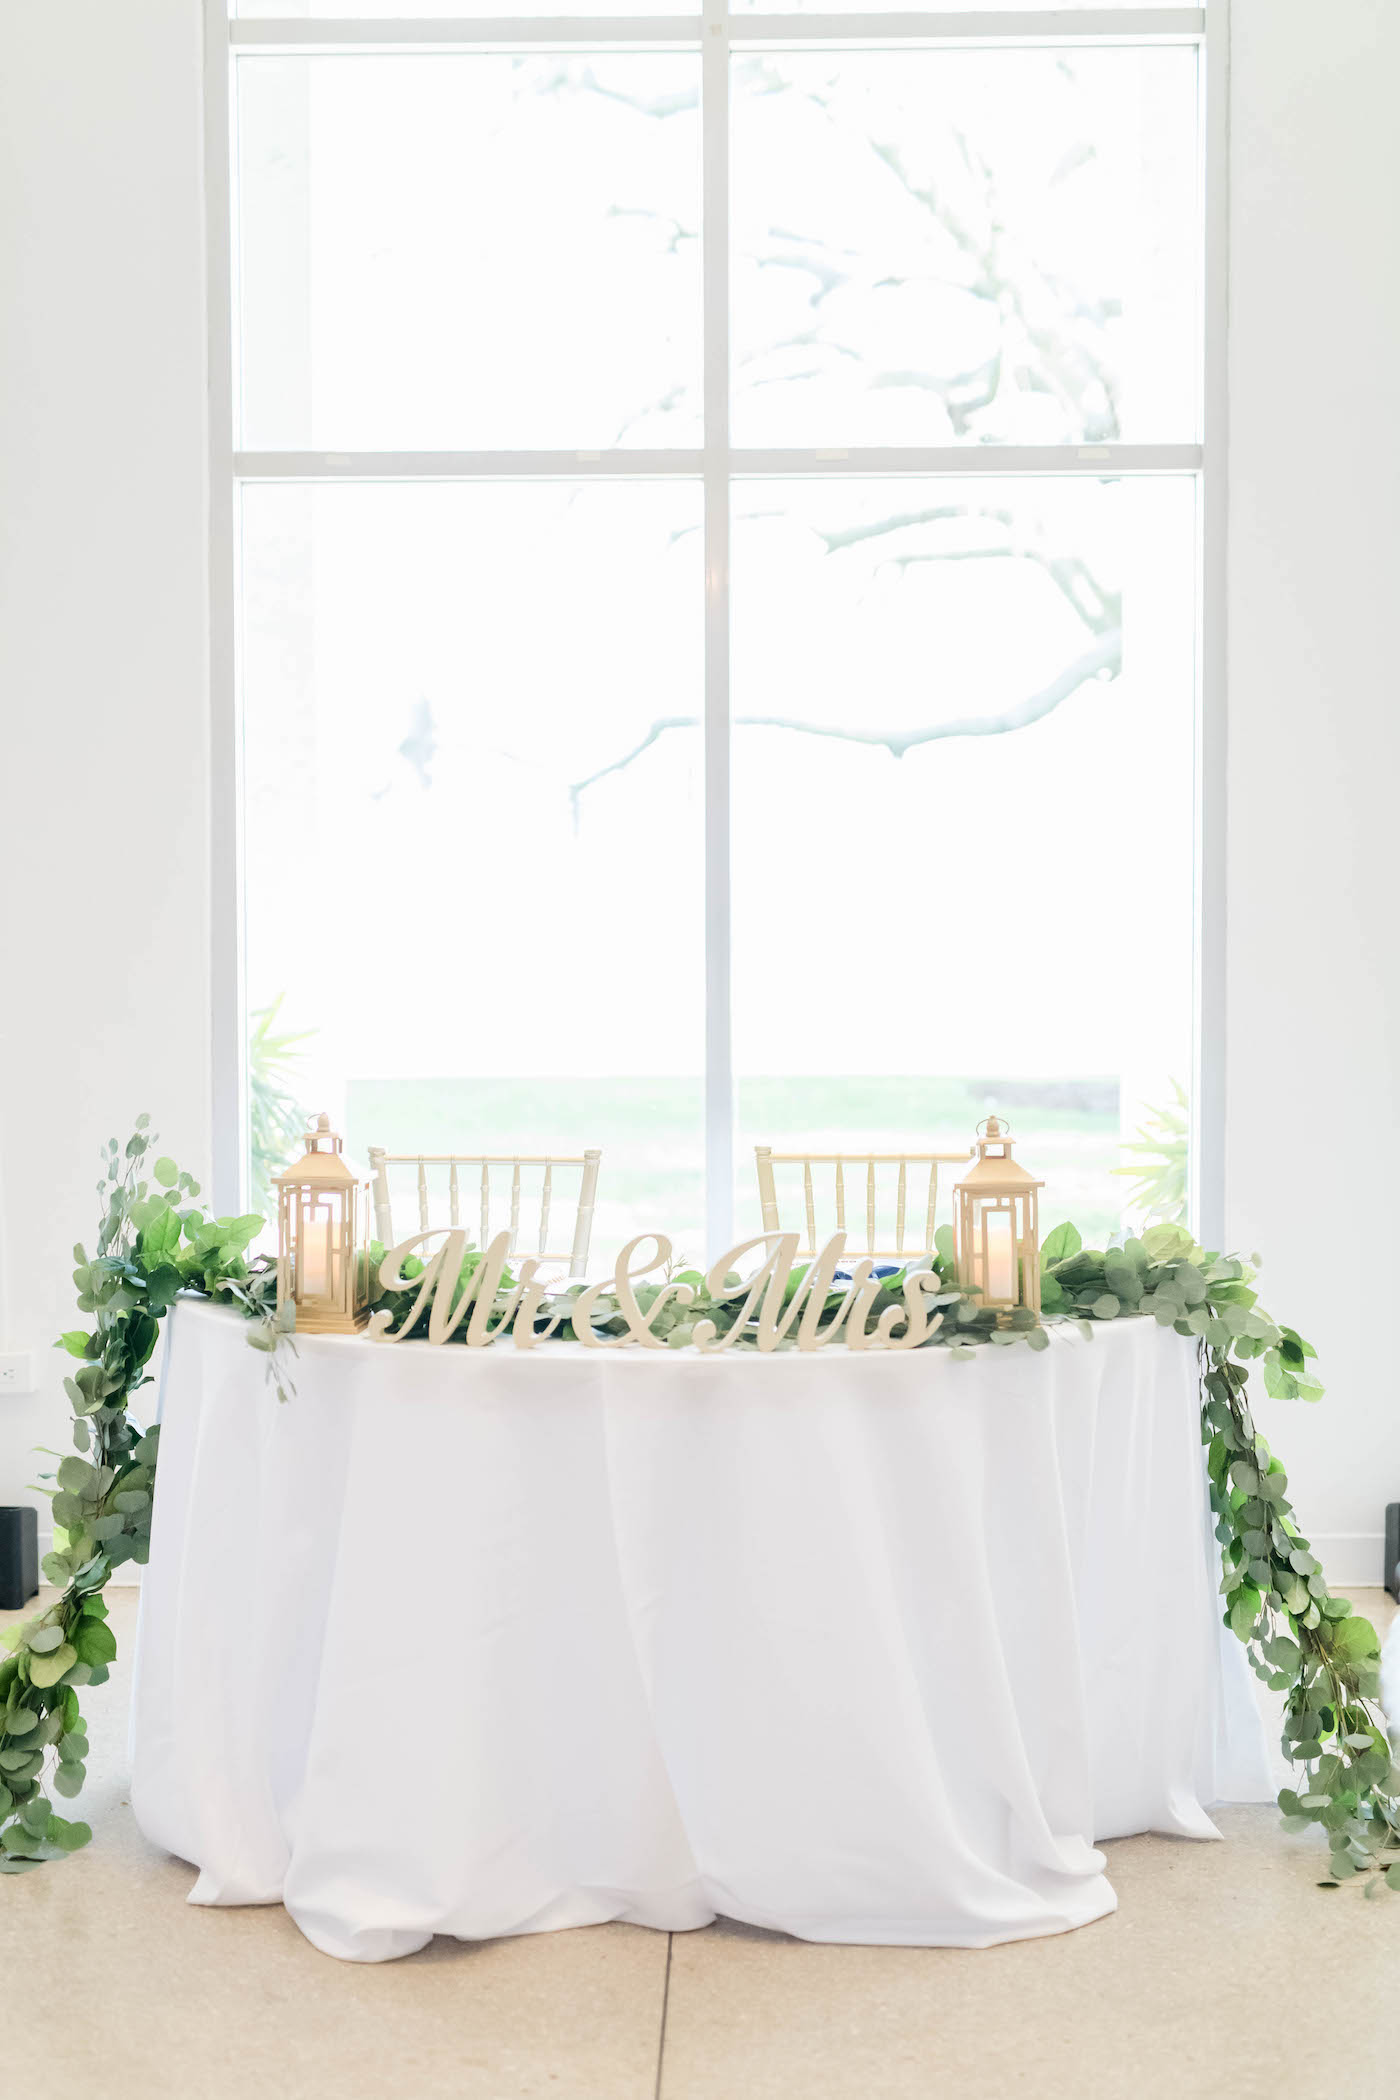 Wedding Sweetheart Table with Greenery Garland and Lanterns and Mr and Mrs Tabletop Signs   Gabro Event Services